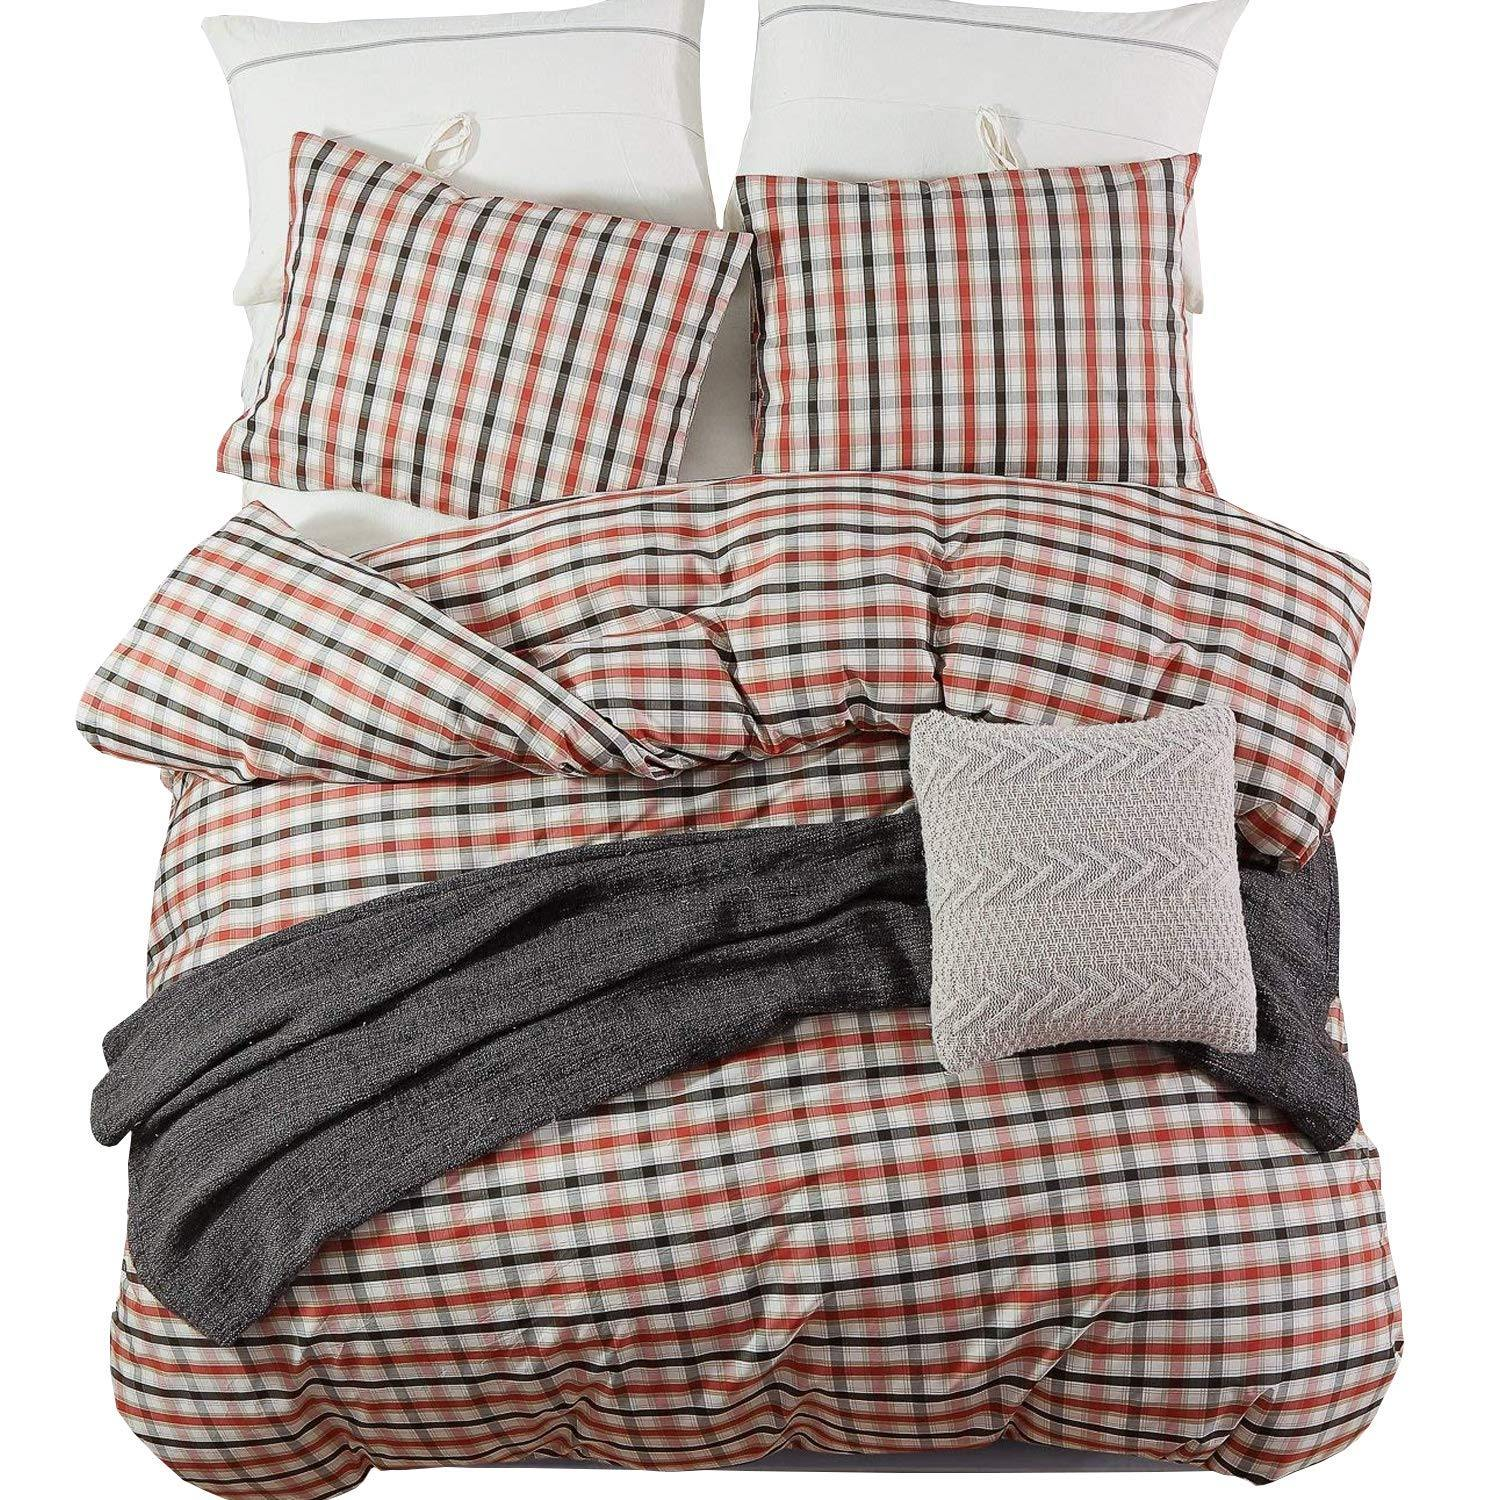 NTBAY 3 Pieces Duvet Cover Set 100% Cotton Warm Woven Plaid Printed Design - NTBAY